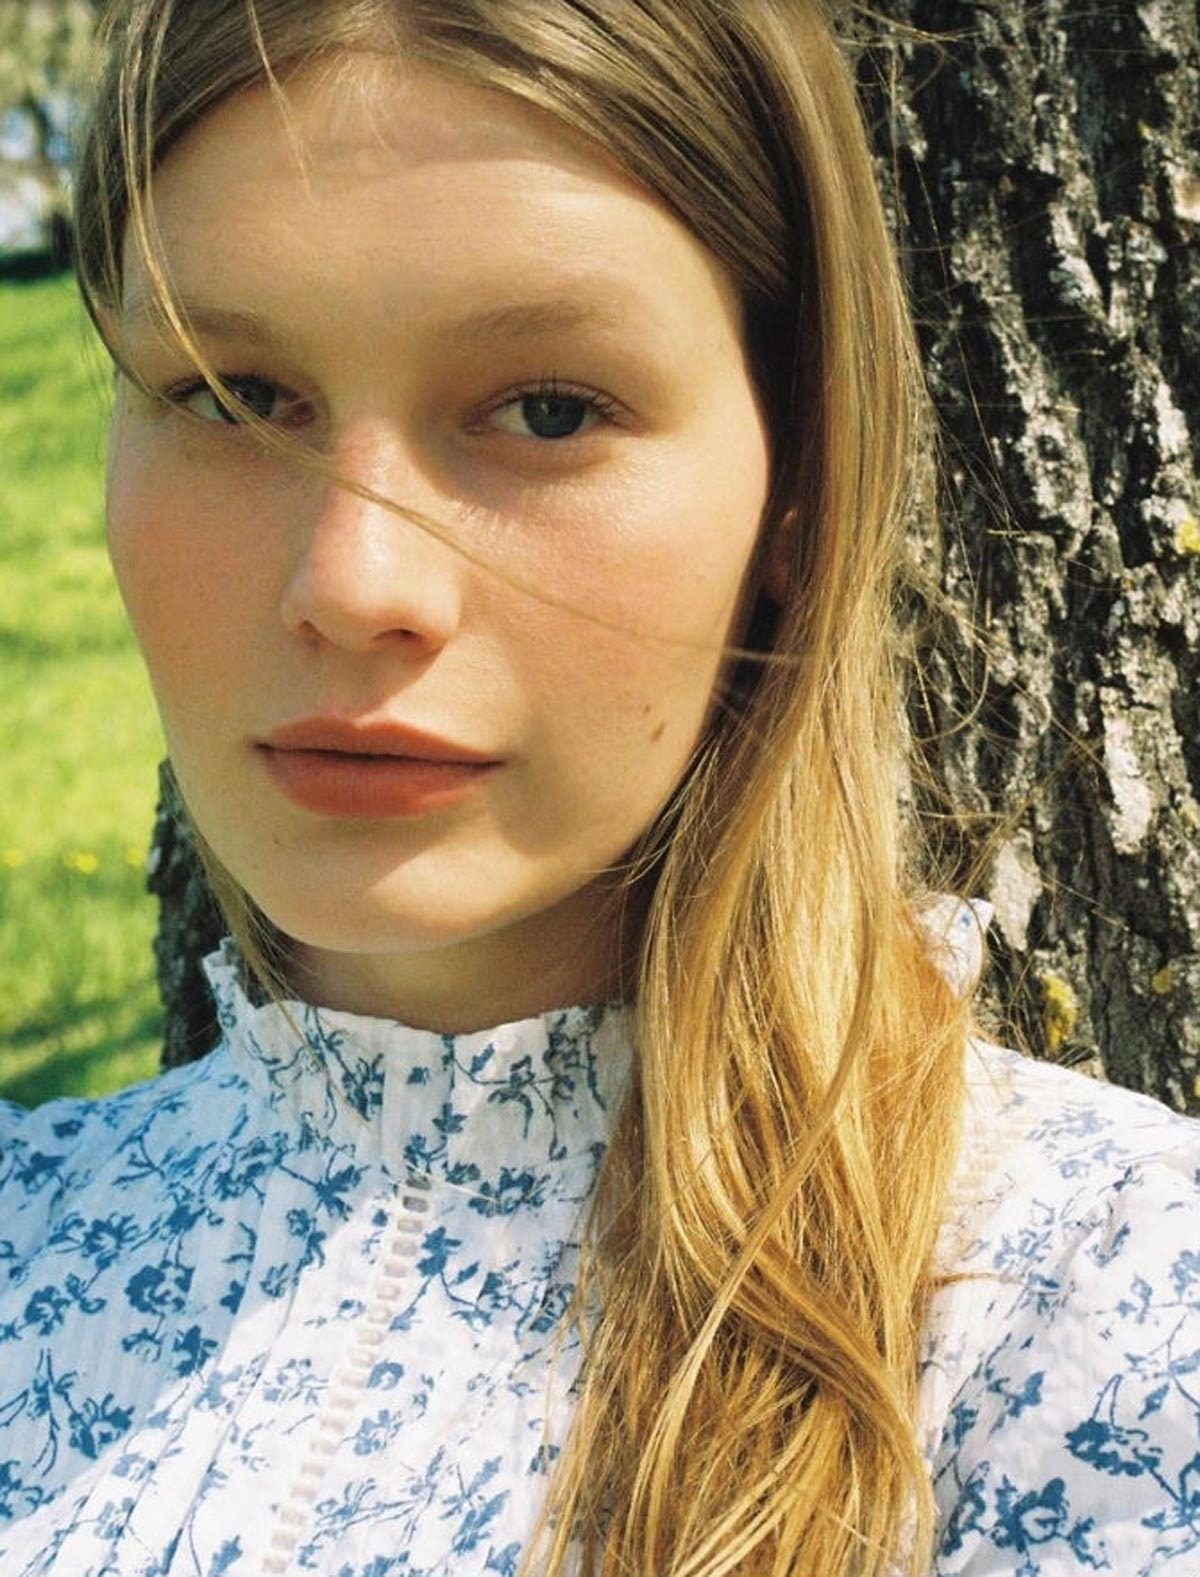 In Bildern: Urban Outfitters x Laura Ashley